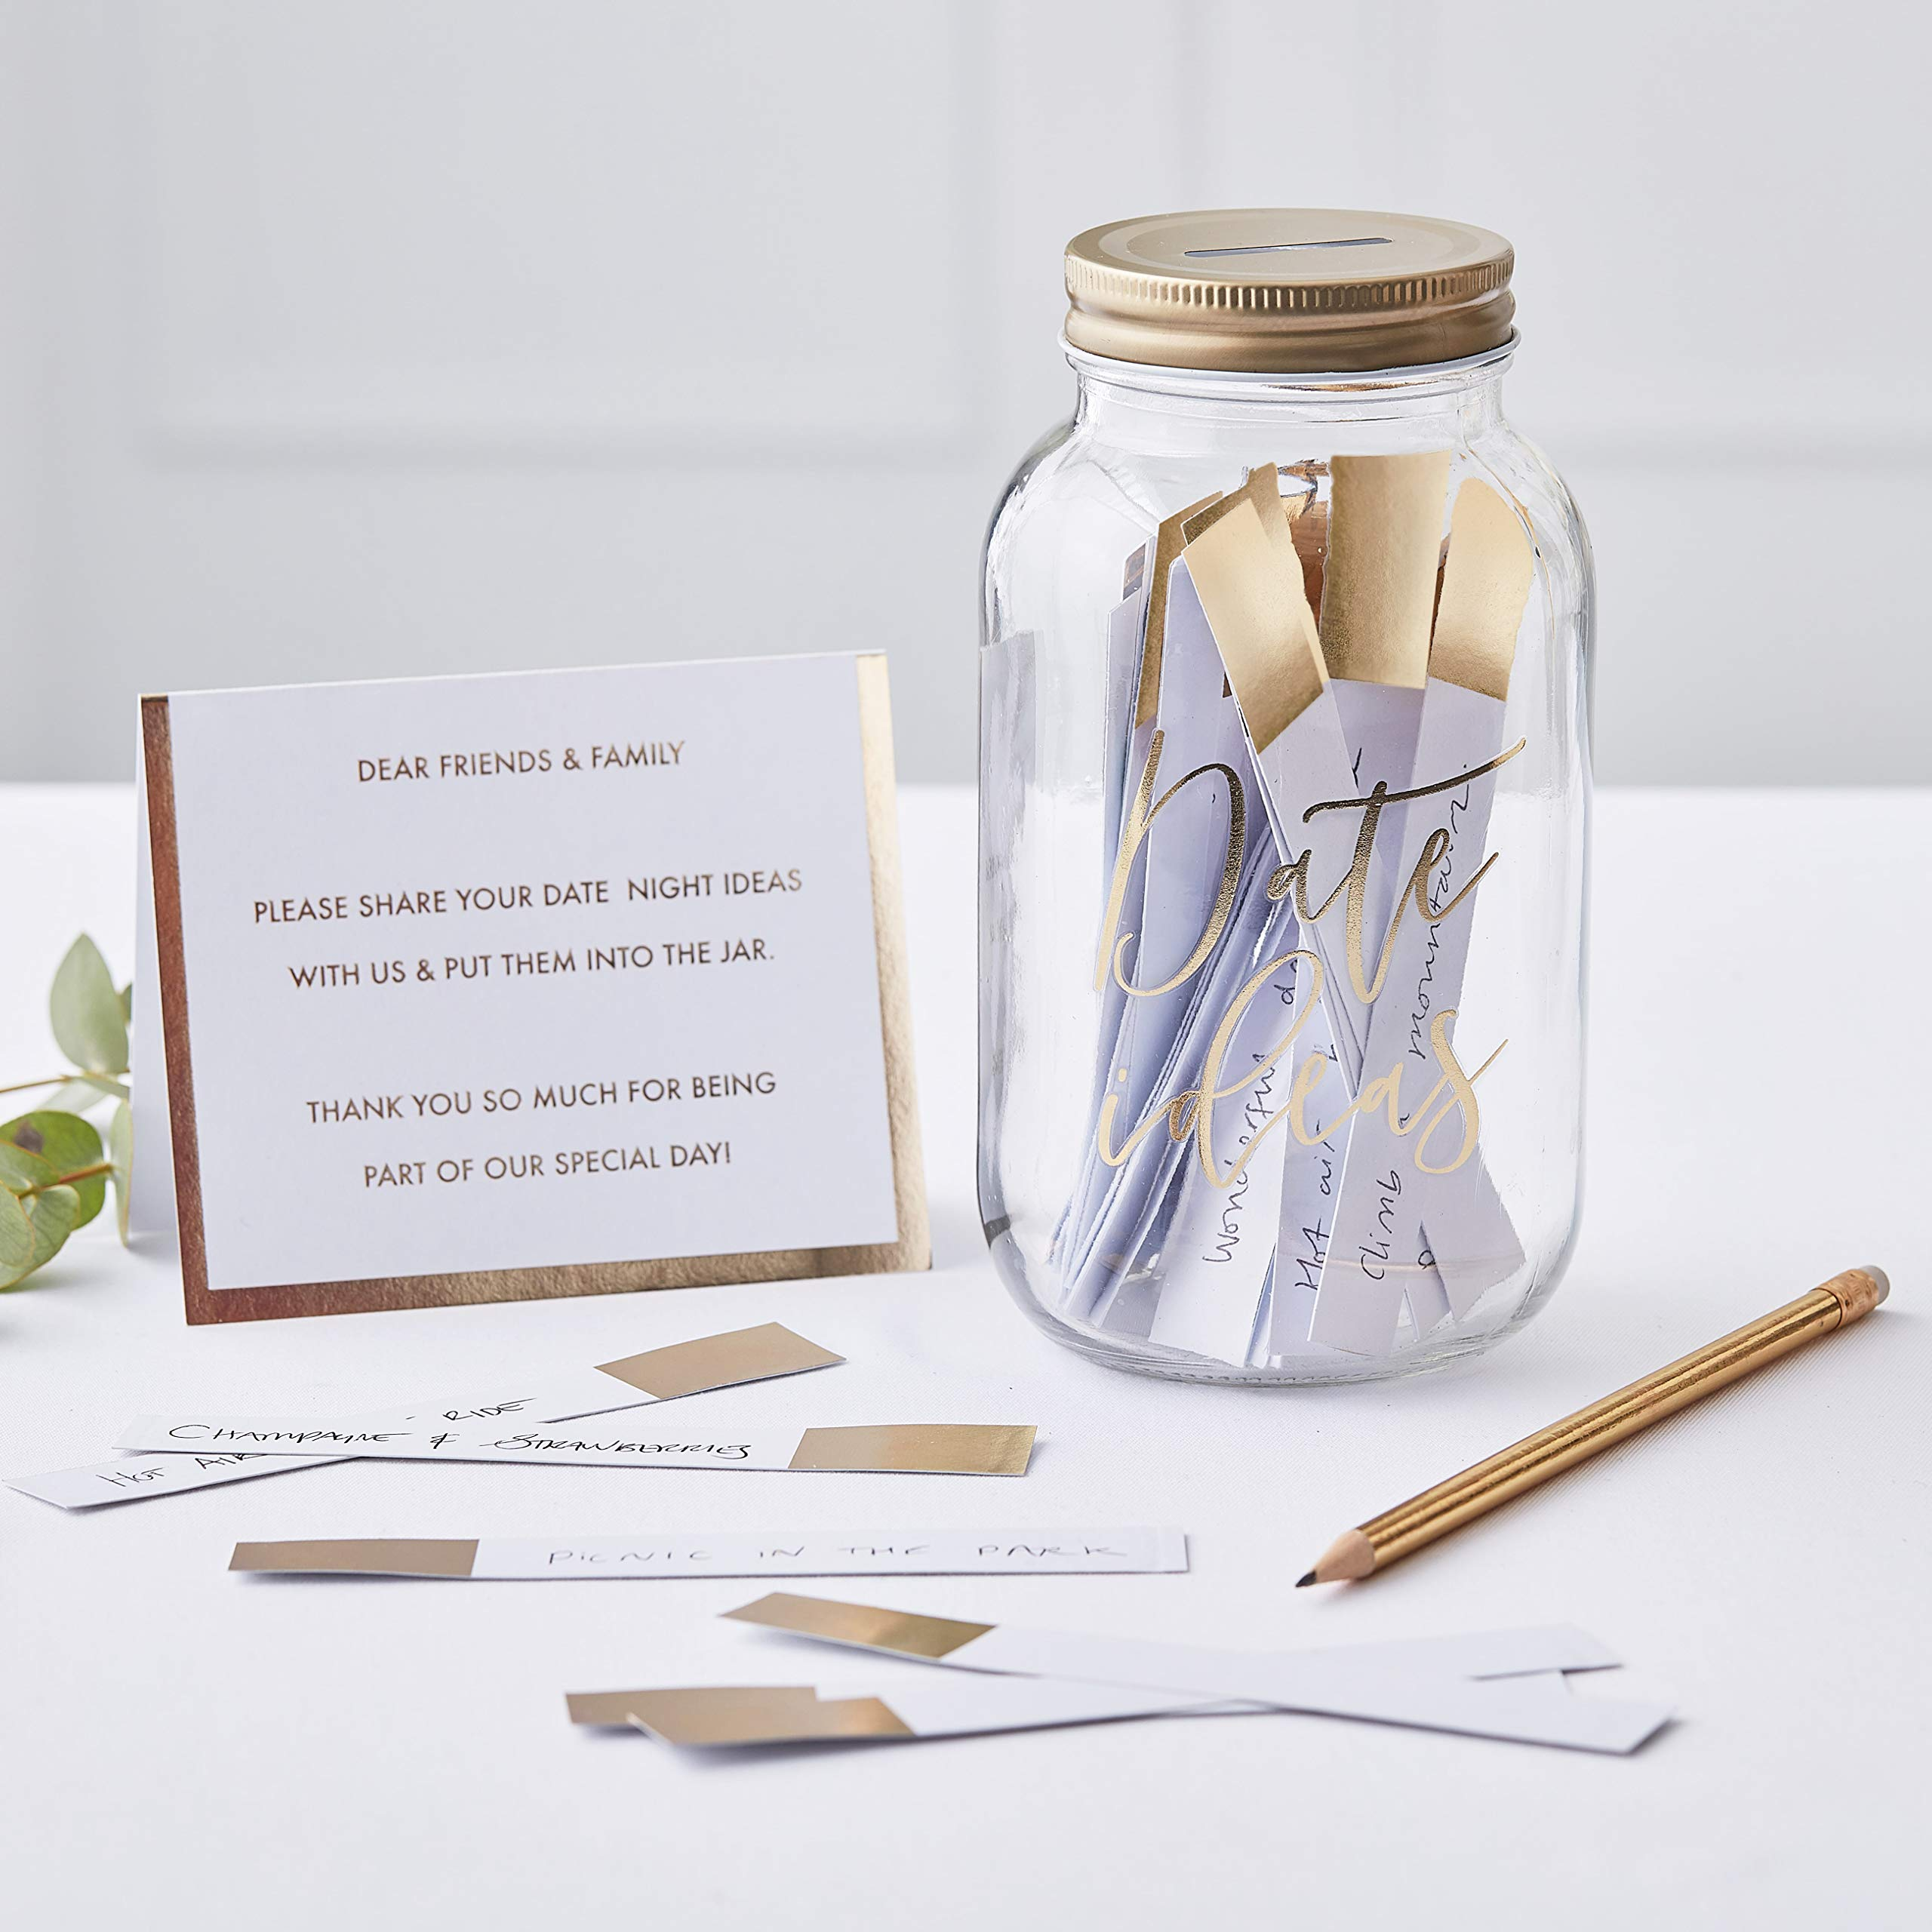 Ginger Ray Gold Wishing Date Jar Guest Book Alternative Decoration Gift Gold Wedding Buy Online In Guernsey At Guernsey Desertcart Com Productid 110650343